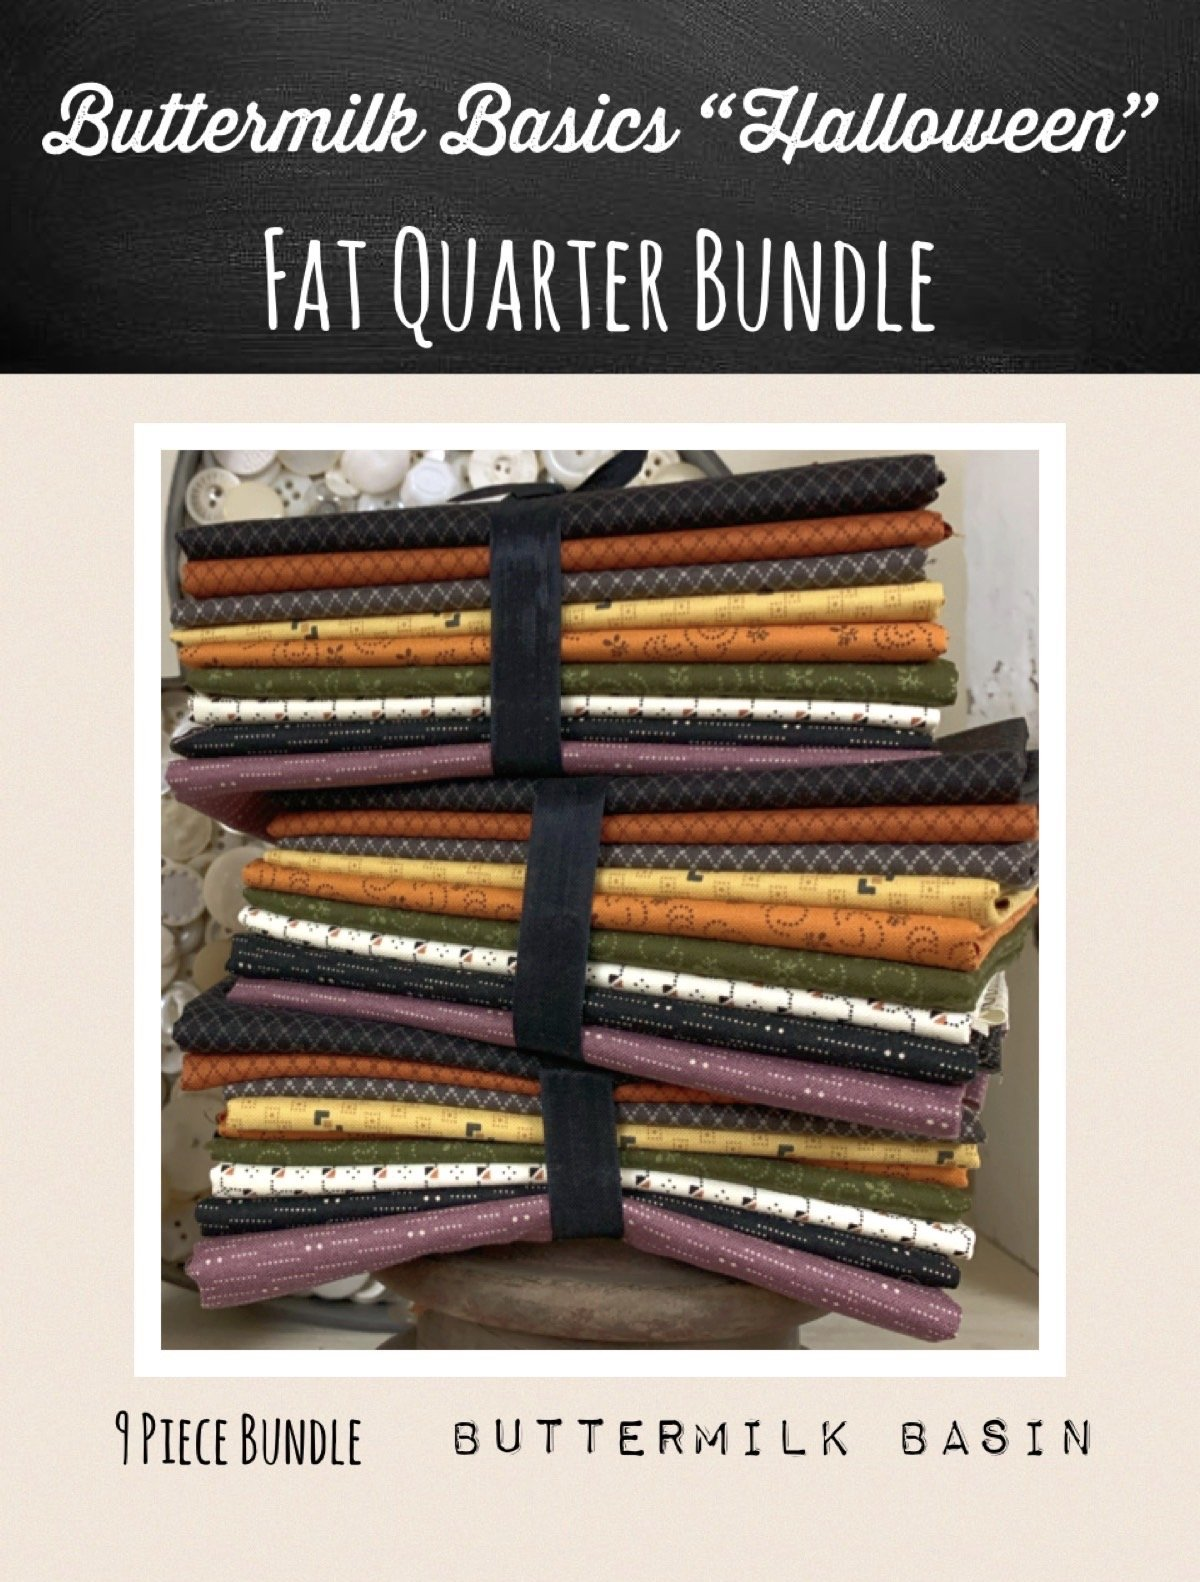 Buttermilk Basics 9 Piece Fat Quarter Bundle * Halloween